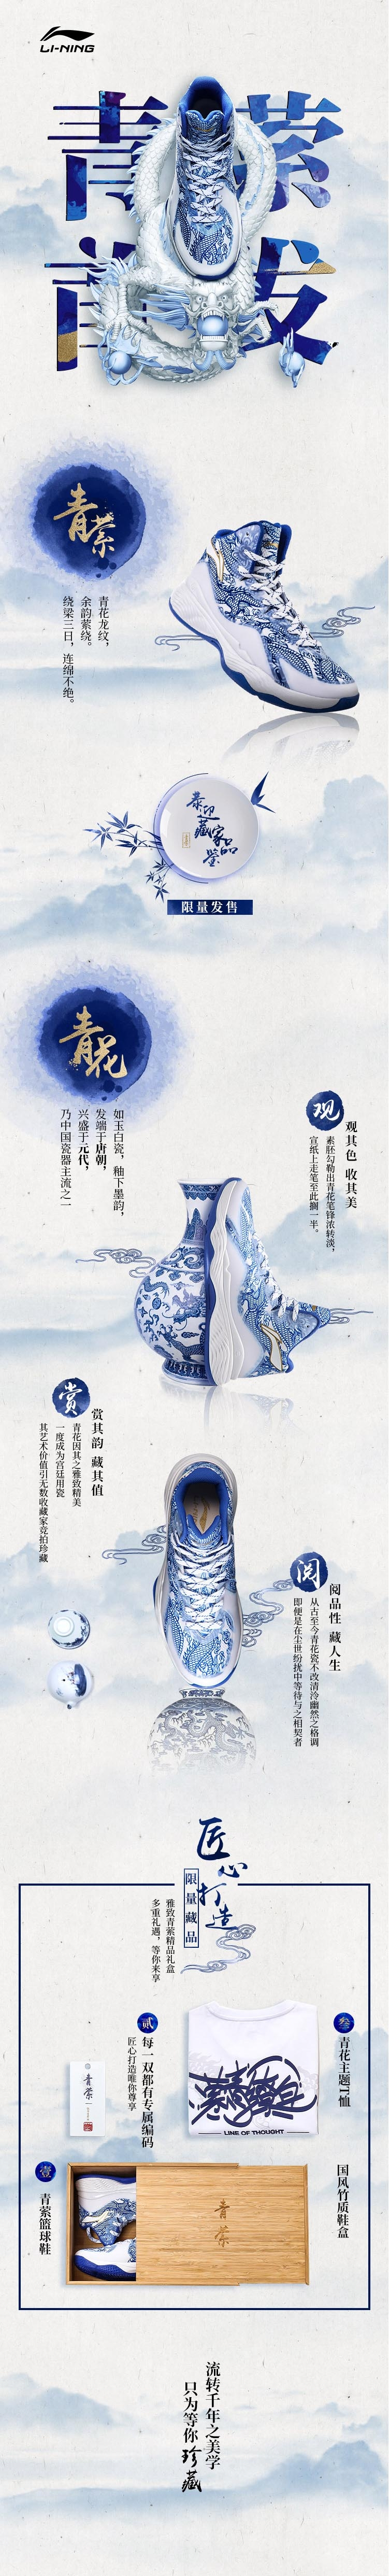 "Li-Ning 2017 Limited Edition Men's Chinese Style Blue and White Wares Basketball Shoes - ""Qing Ying"""